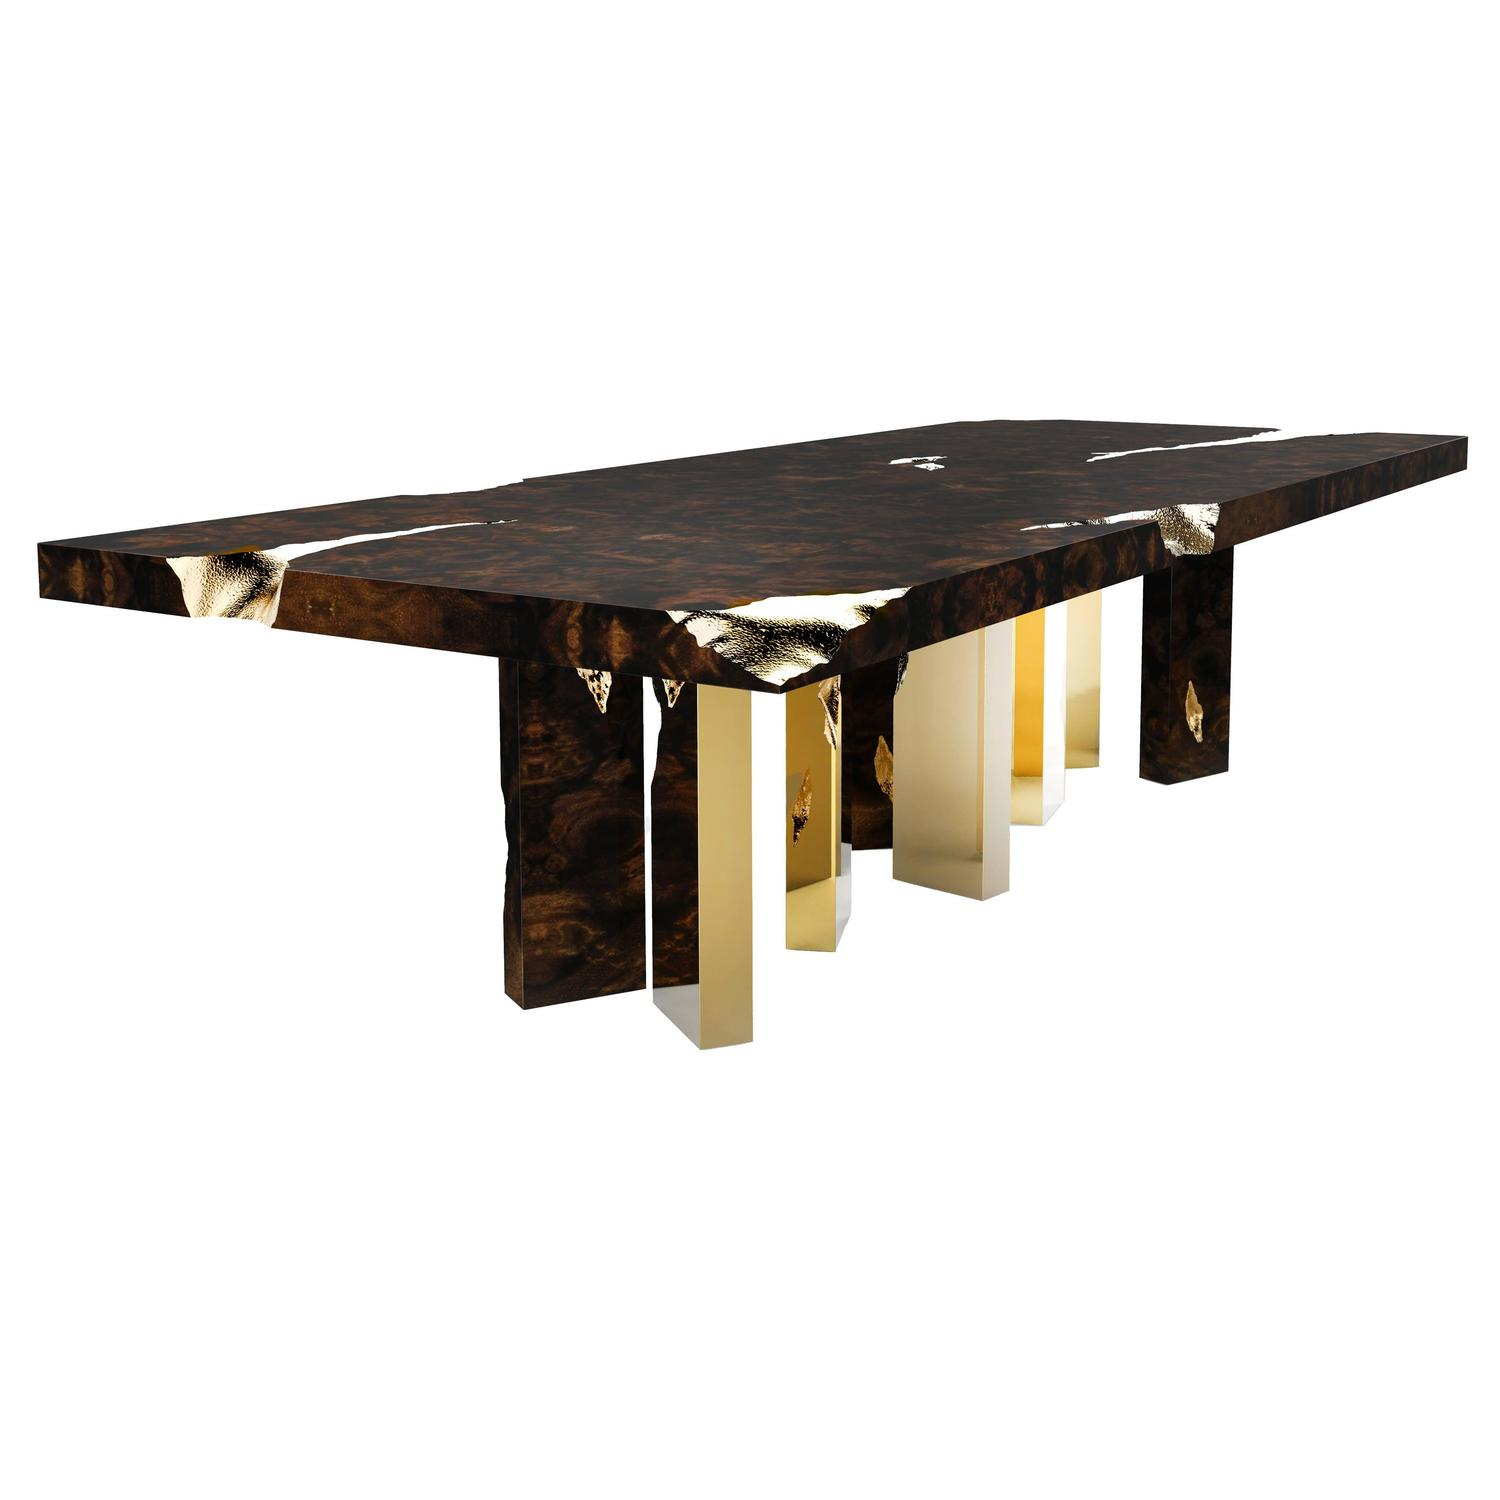 European Modern Wood and Brass Empire Center Coffee Table by Boca